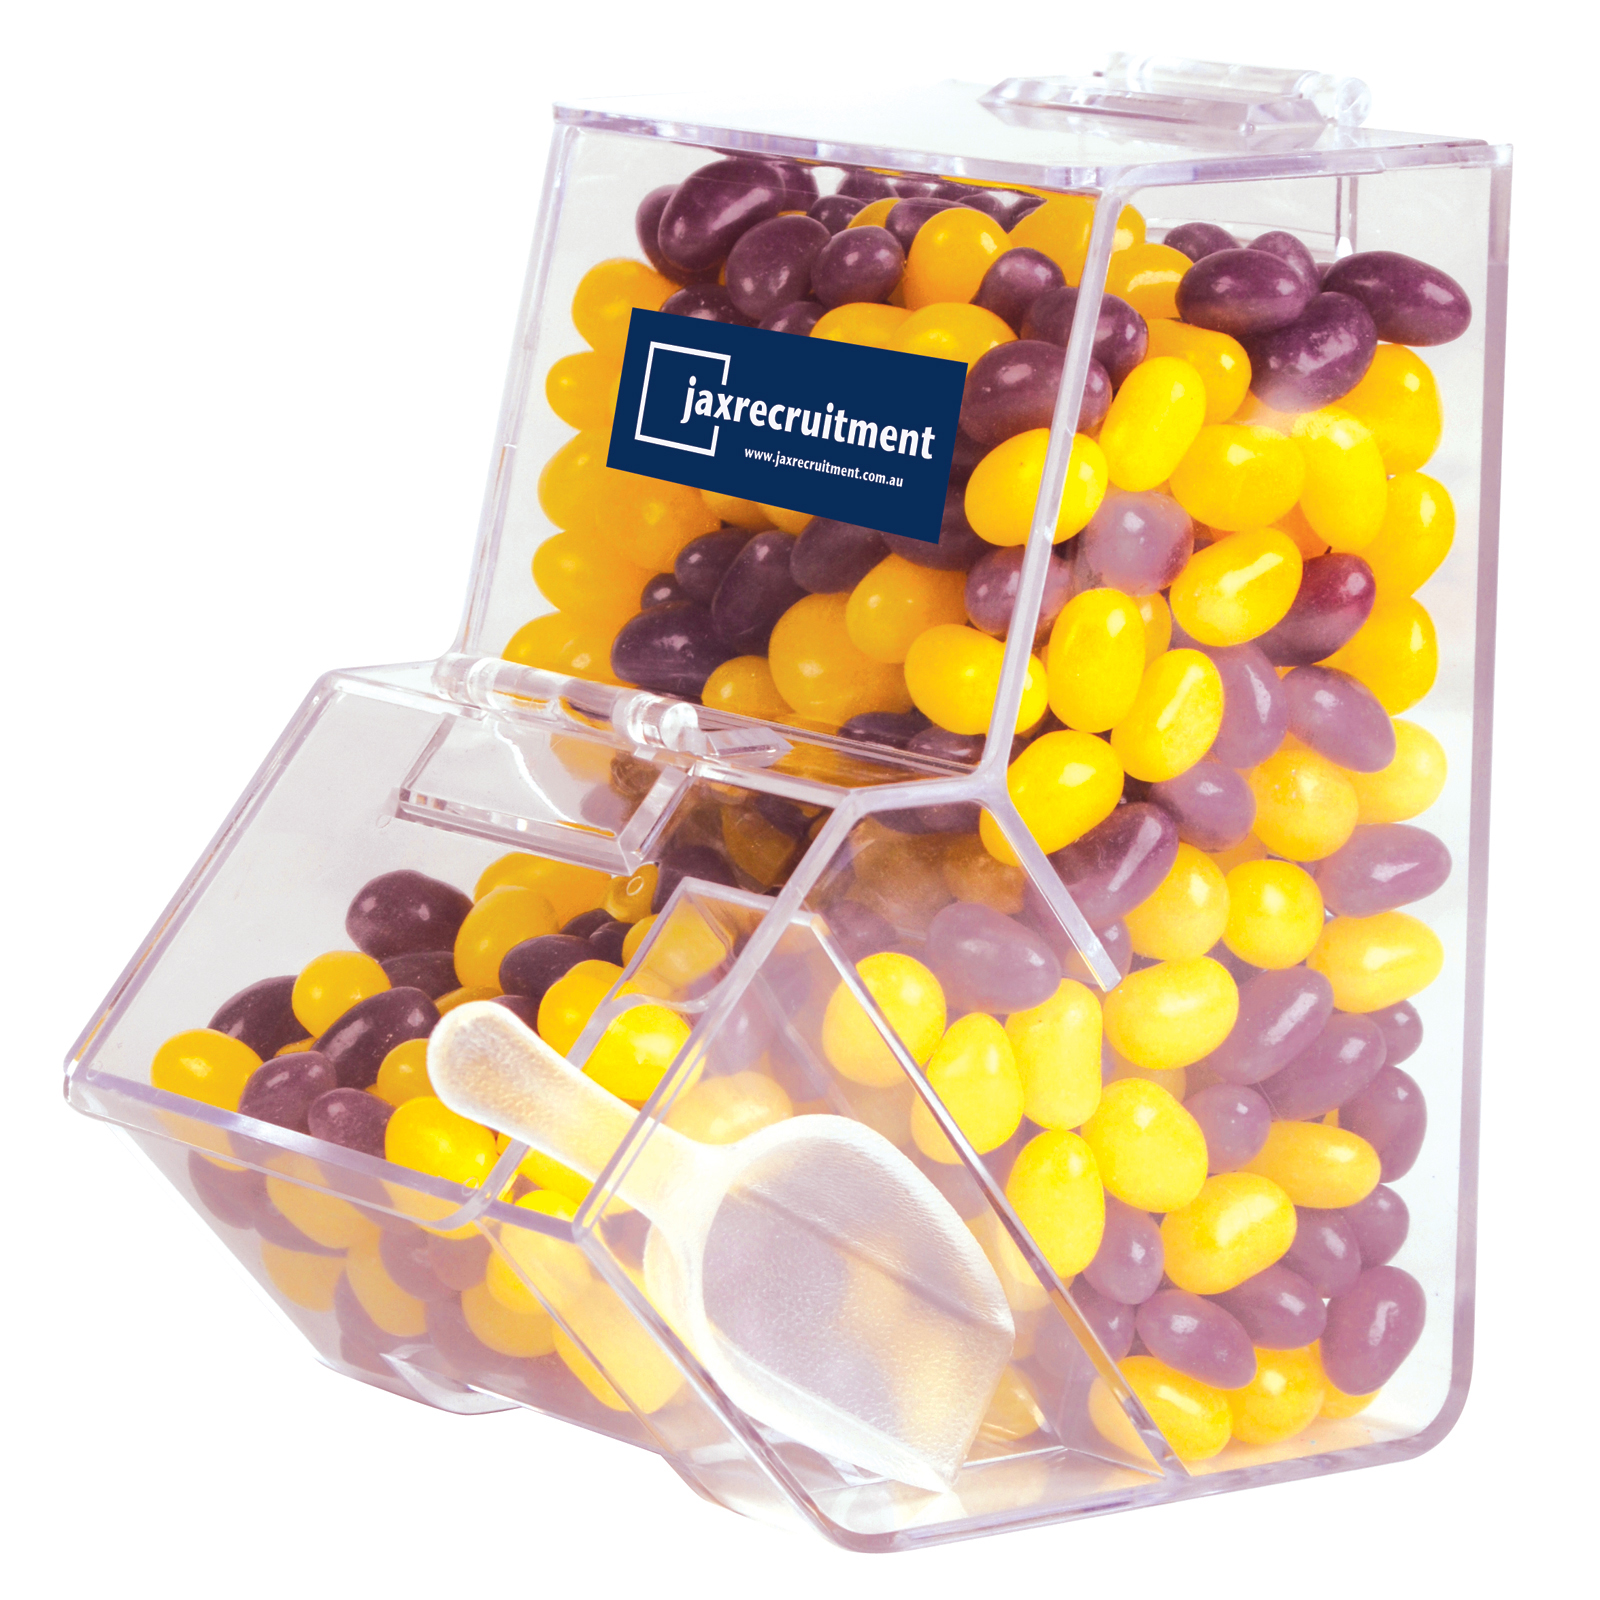 Corporate Colour Mini Jelly Beans in Dispenser - Includes a full colour logo, From $9.53